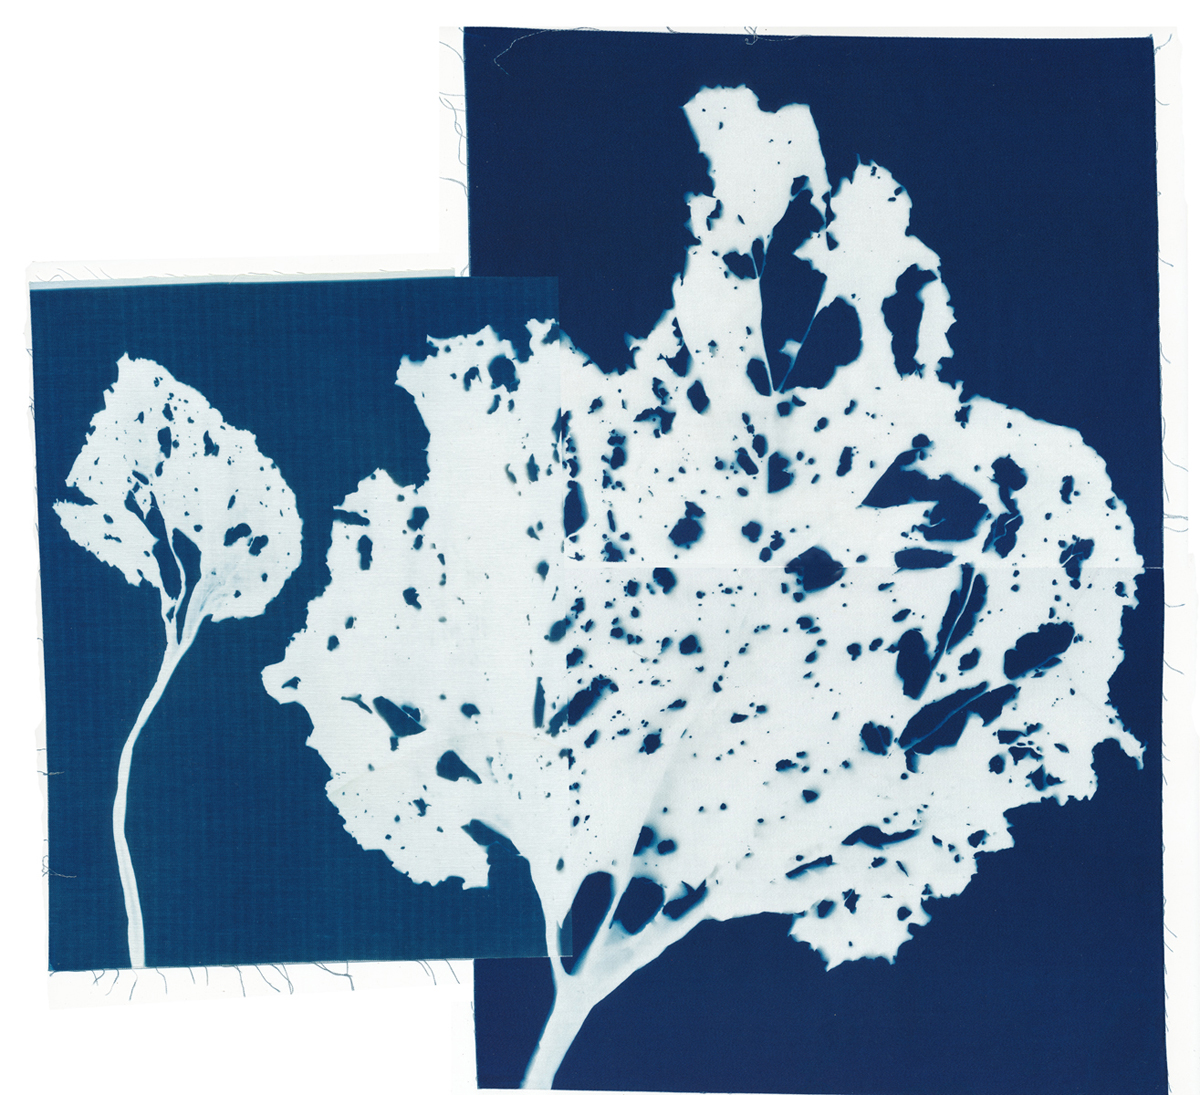 Rhubarb, cyanotype on cotton fabric, Mike Tedder